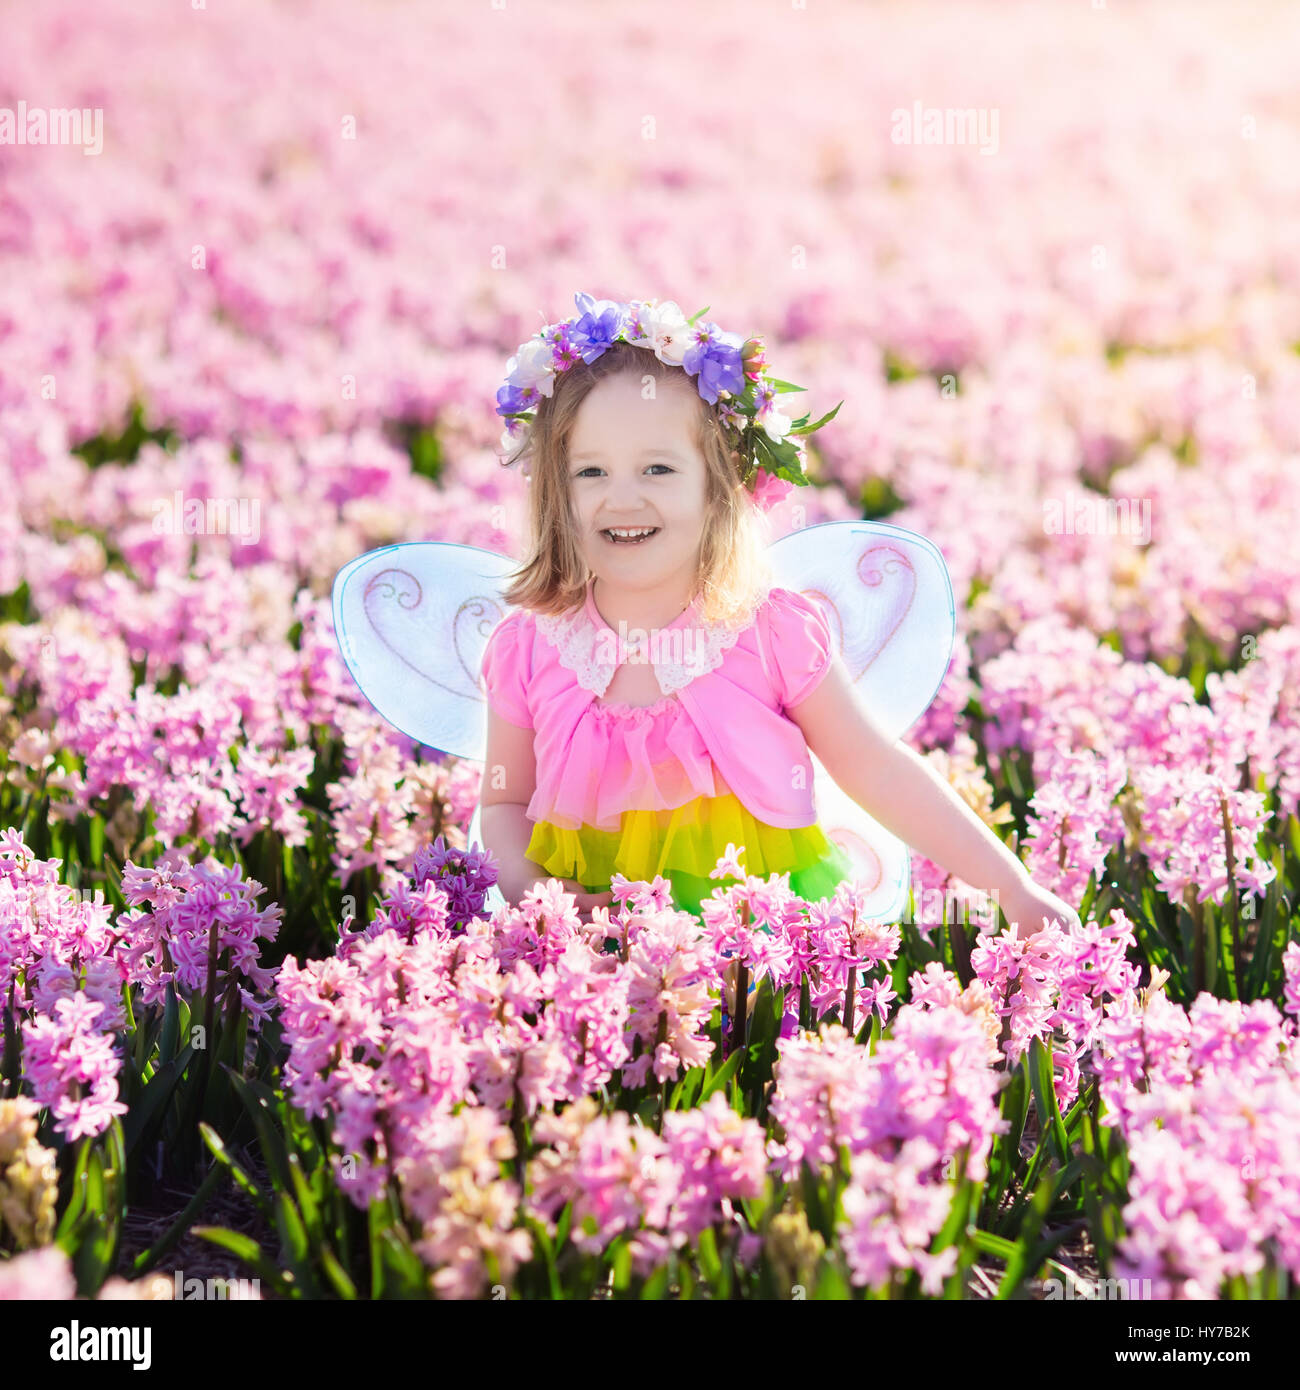 Beautiful Girl Playing In Blooming Hyacinth Flower Field. Kids Princess  Birthday Party With Fairy Costume, Butterfly Wings And Magic Wand. Children  Pl